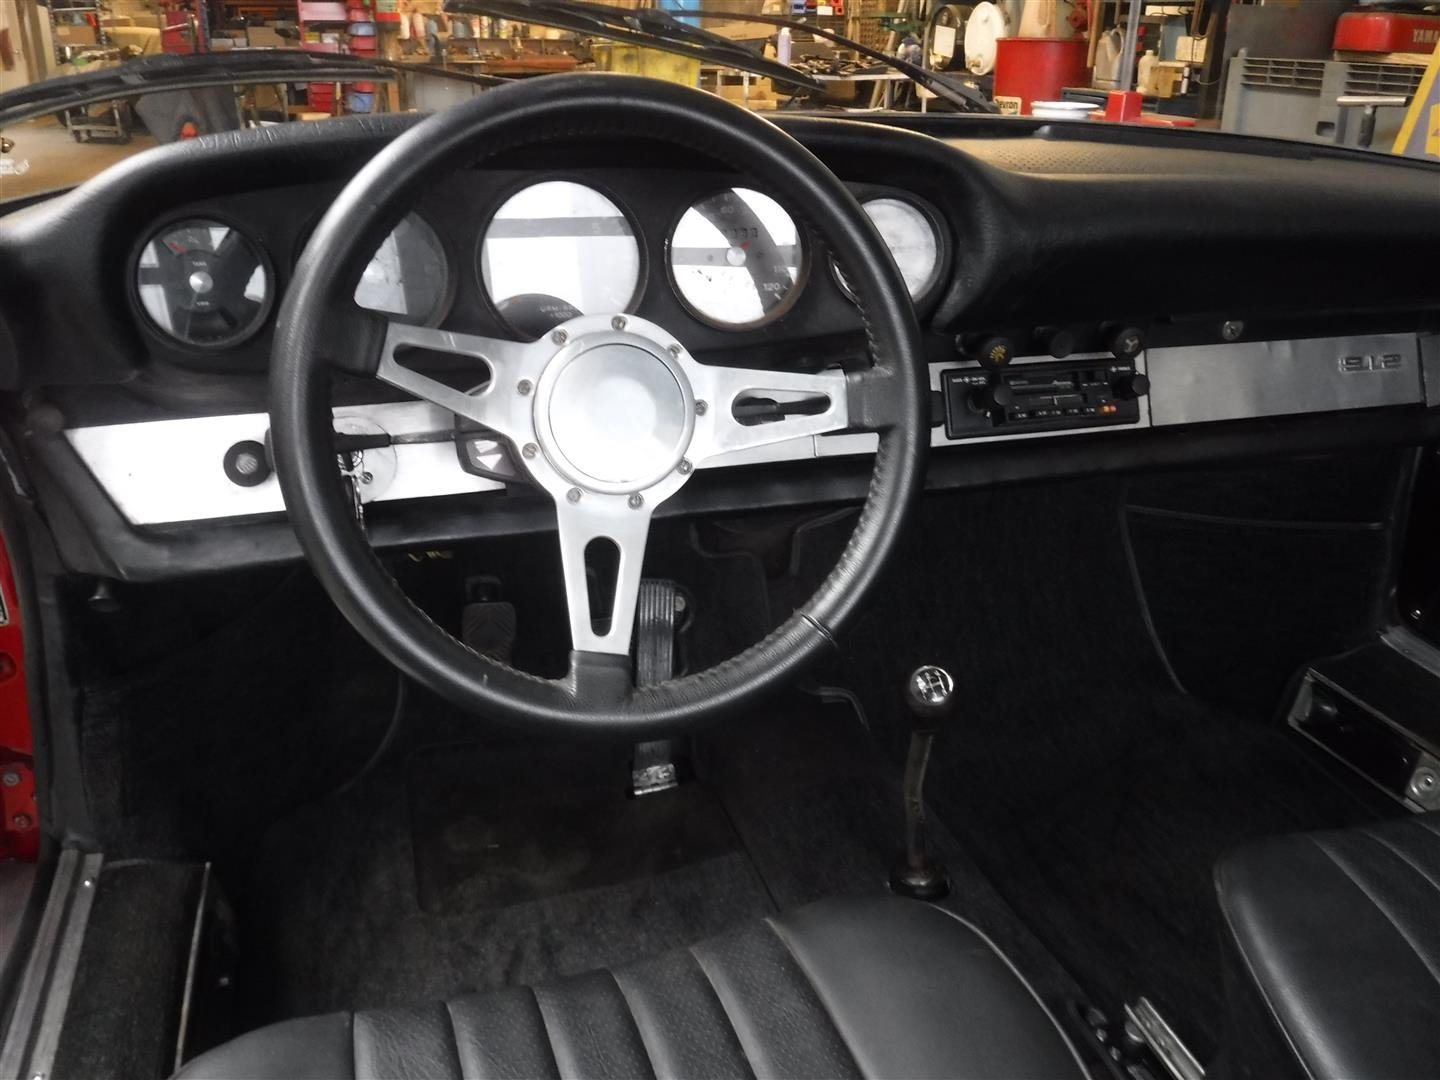 1968 Porsche 912 coupé '68 For Sale (picture 6 of 6)